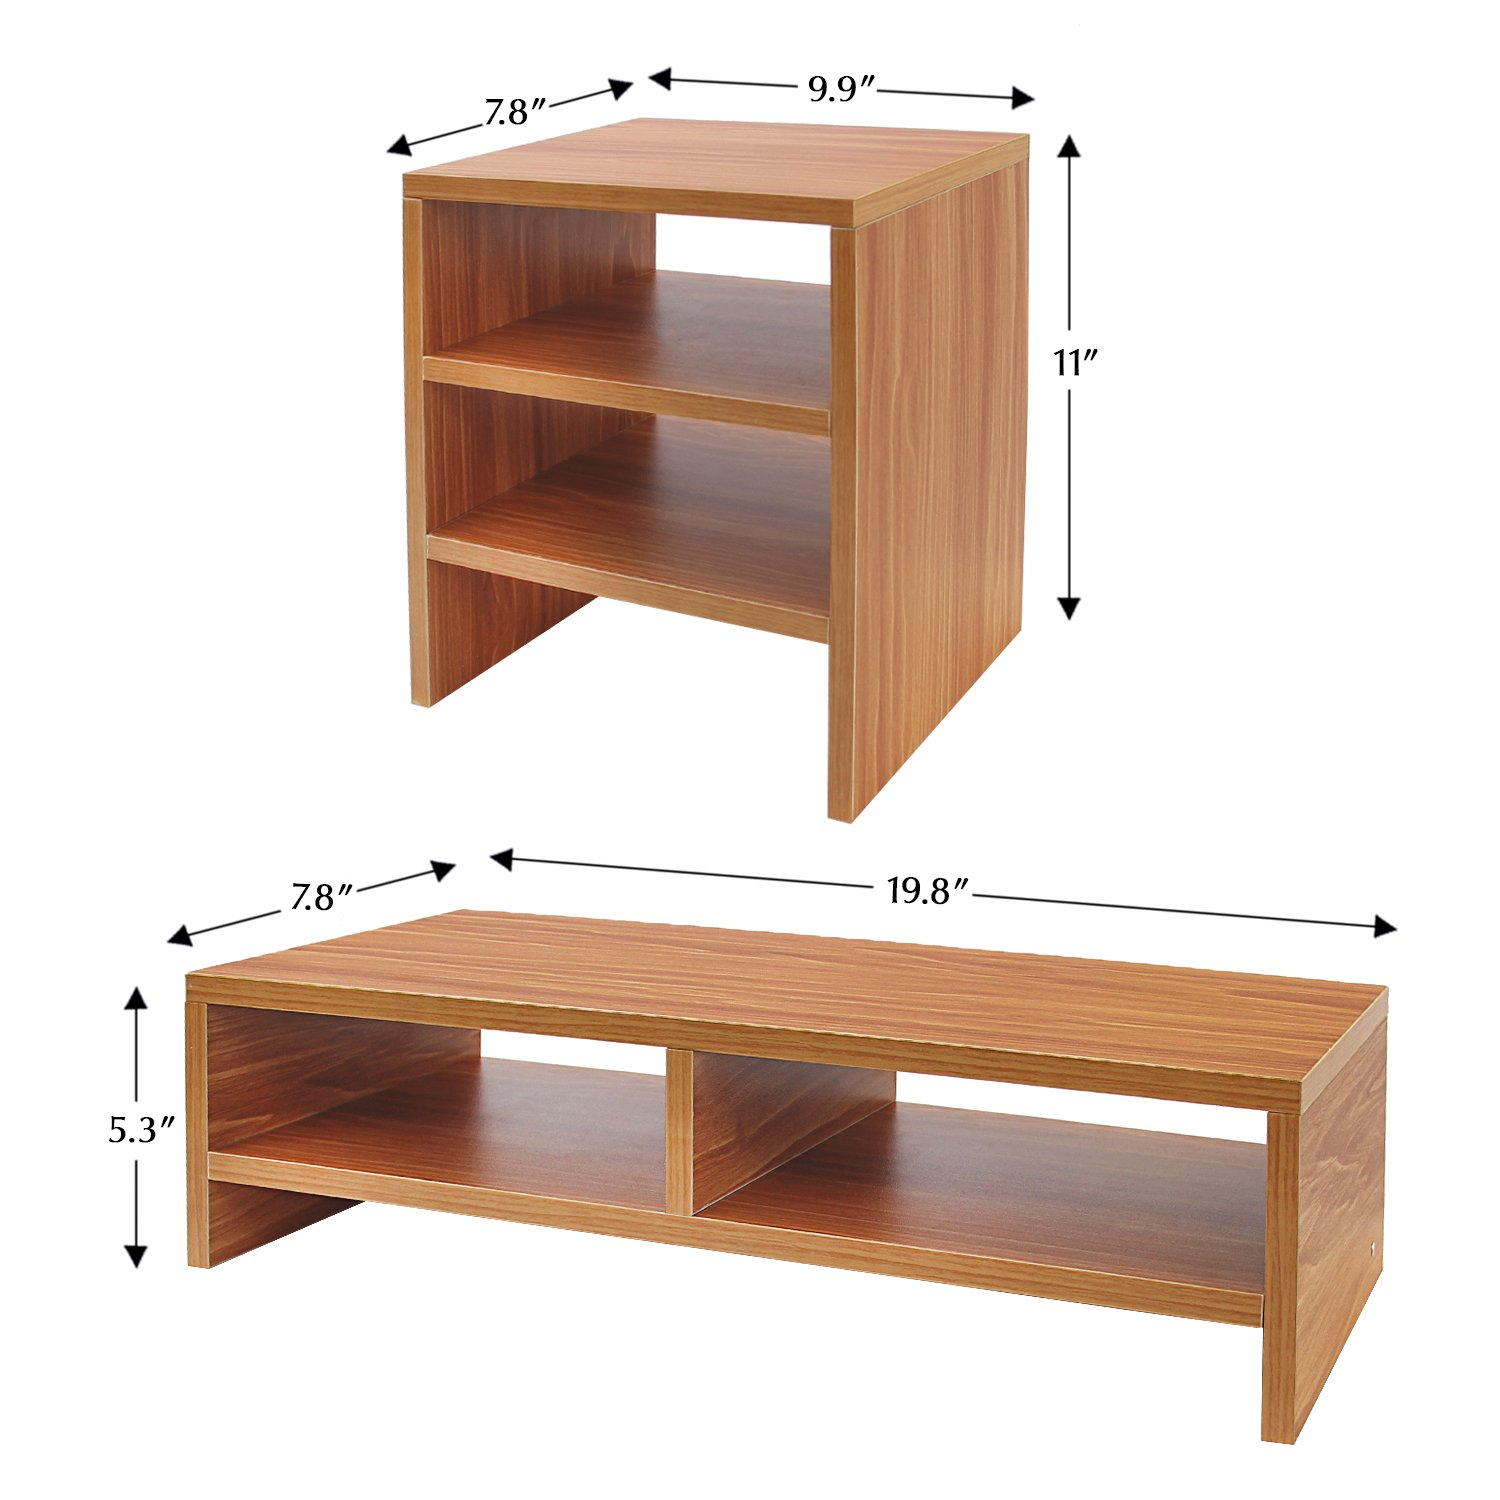 Jerry & Maggie - Wood Monitor Stand - 2 Parts Combination - Modern Dresser Shelf Unit Storage Desk Organizer Computer Stand Shelving - 2 Parts Multi Function Natural Wood Tone